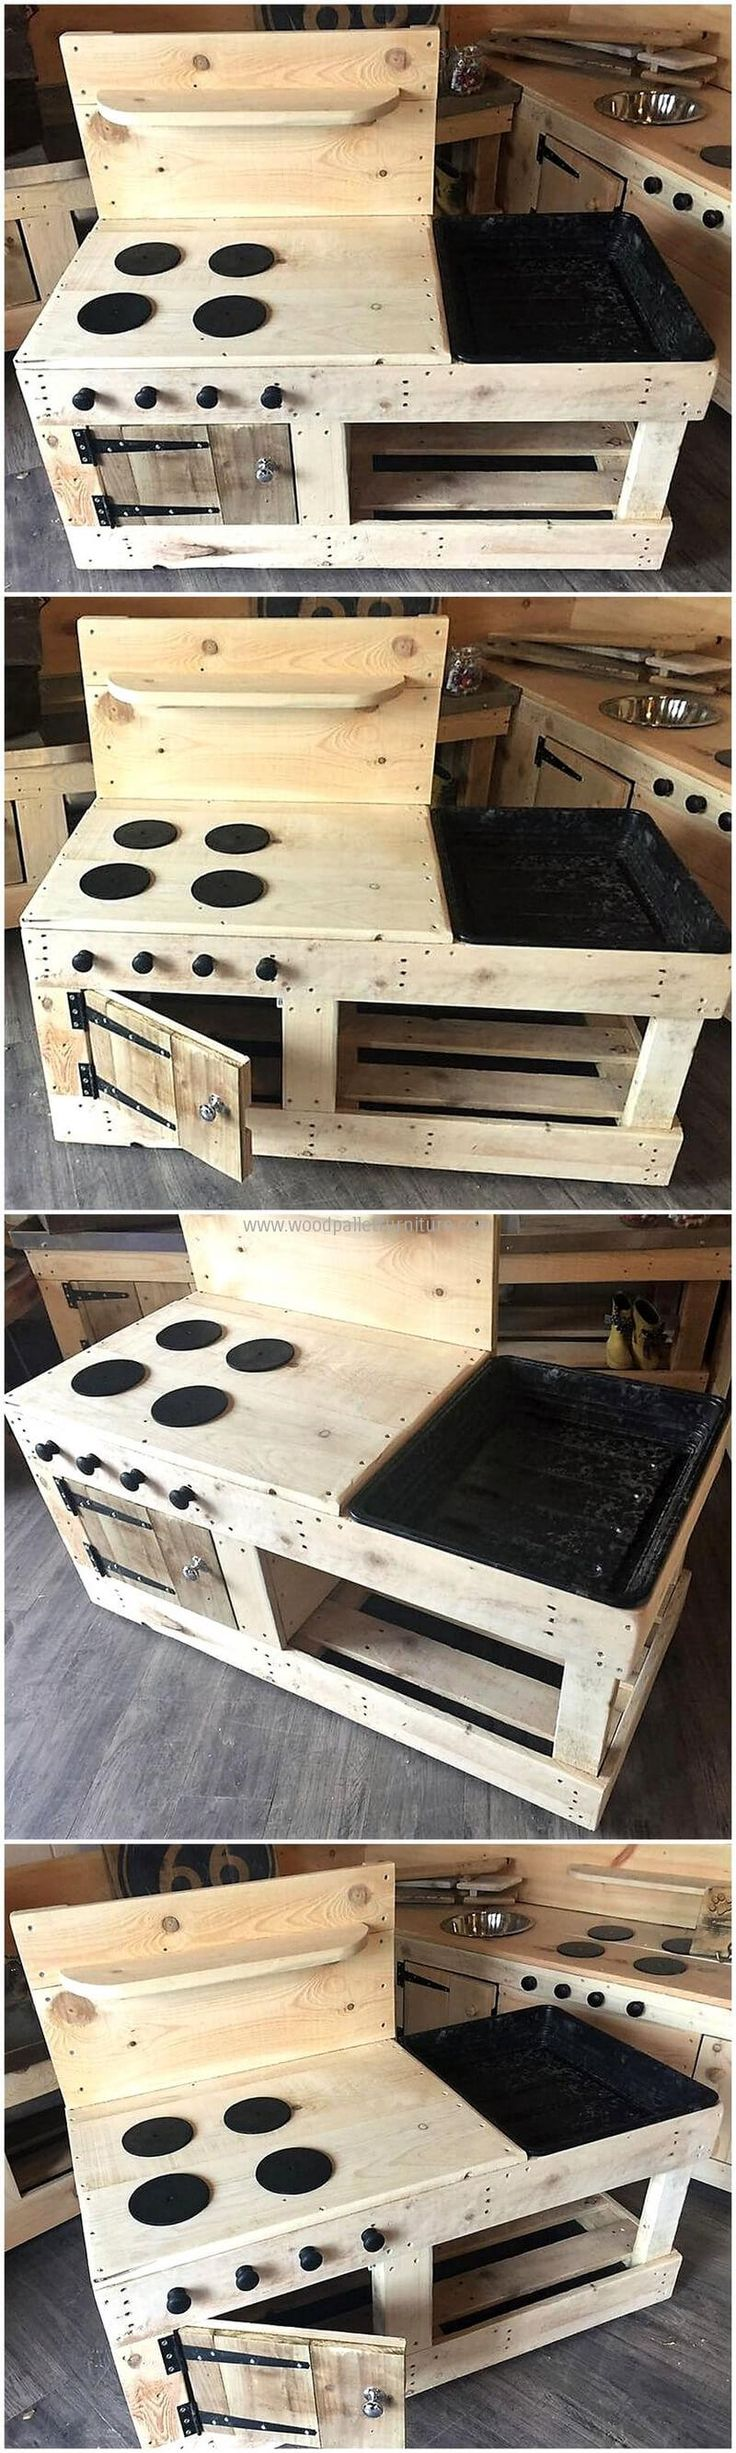 best images about cocina on pinterest recycling shipping